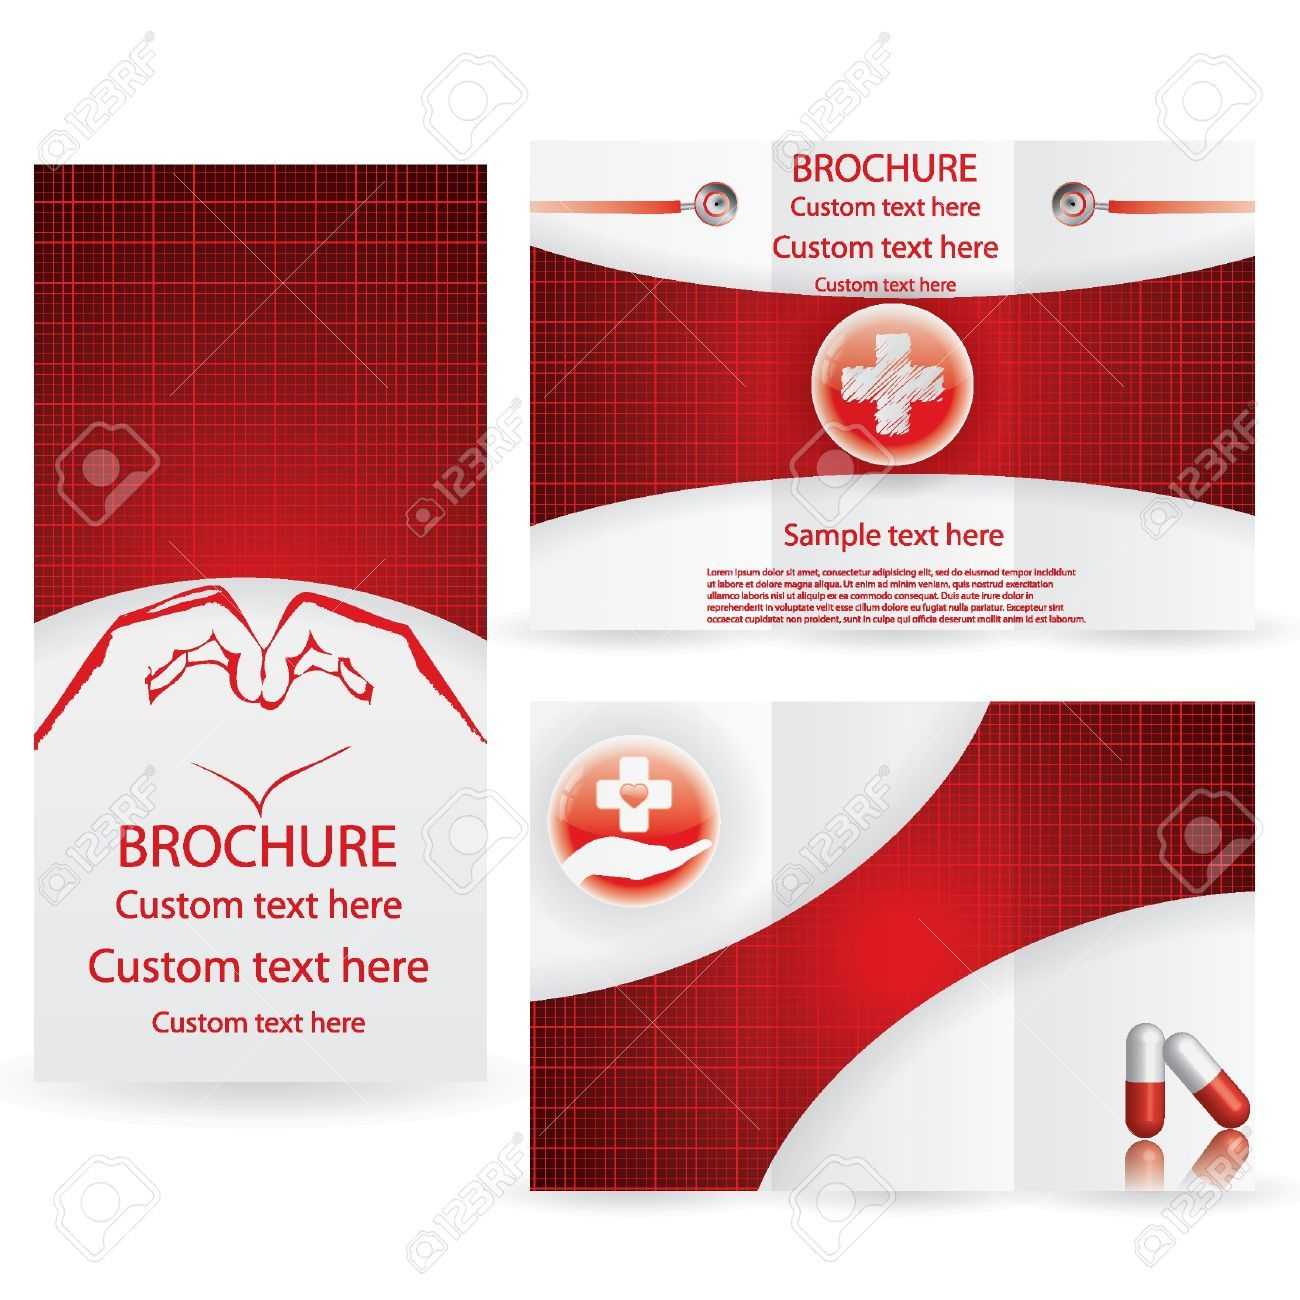 Vector Brochure Layout Design Template Red Medical Royalty Free – Free Medical Brochure Templates